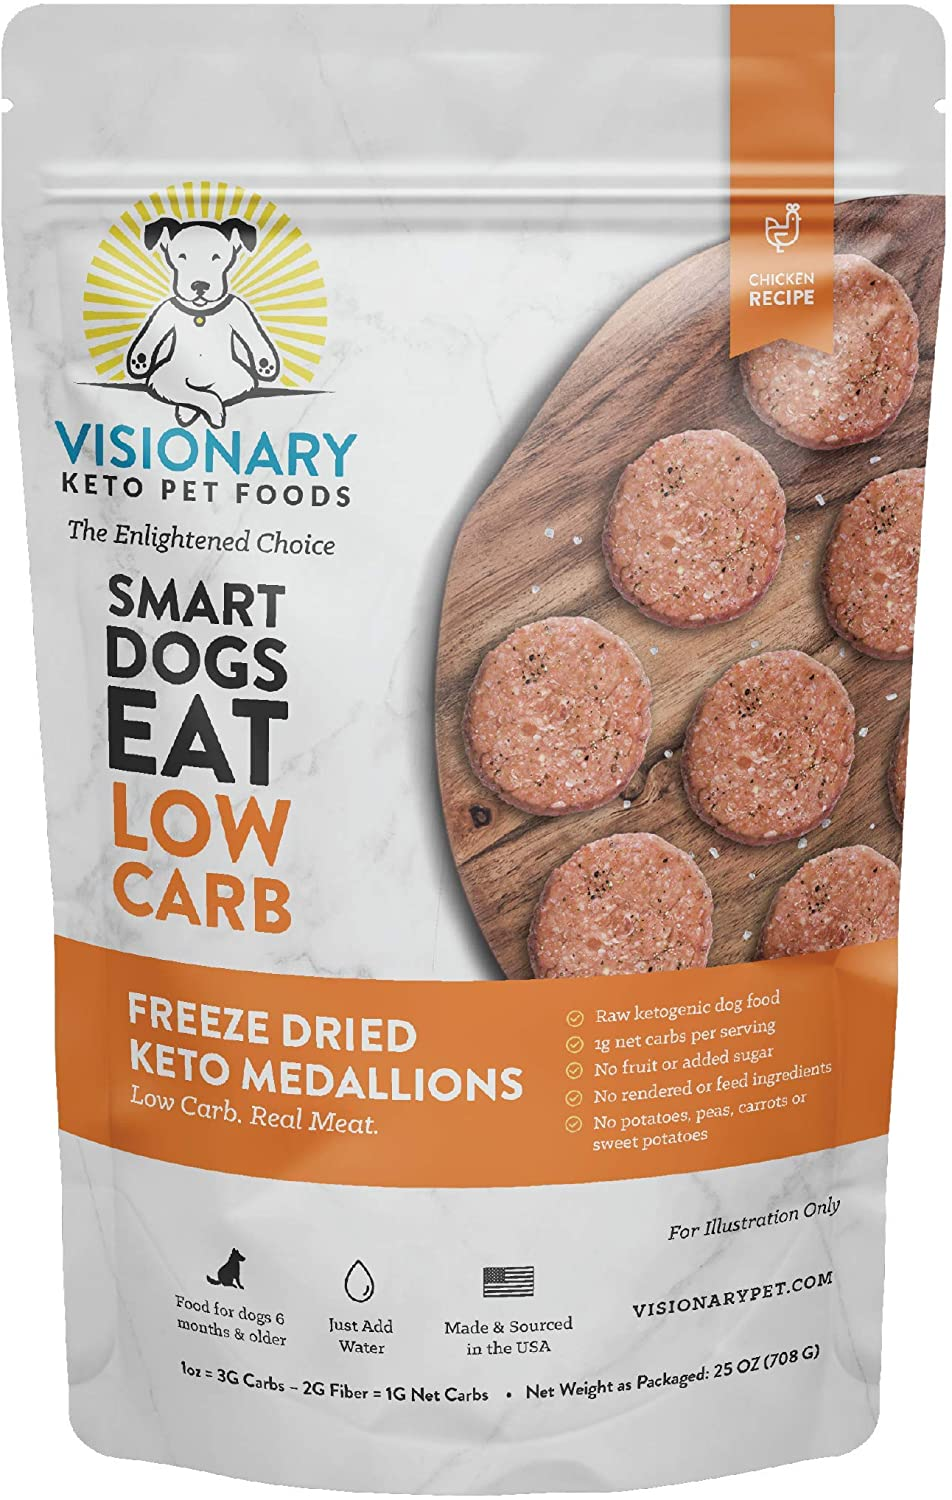 Freeze Dried Dog Food by Visionary Pet | Low Carb Keto Dog Food | Human-Grade Ingredients | Natural Chicken Flavor | No Rendered/Feed Ingredients | Natural Dog Food for Lifelong Health (25oz)